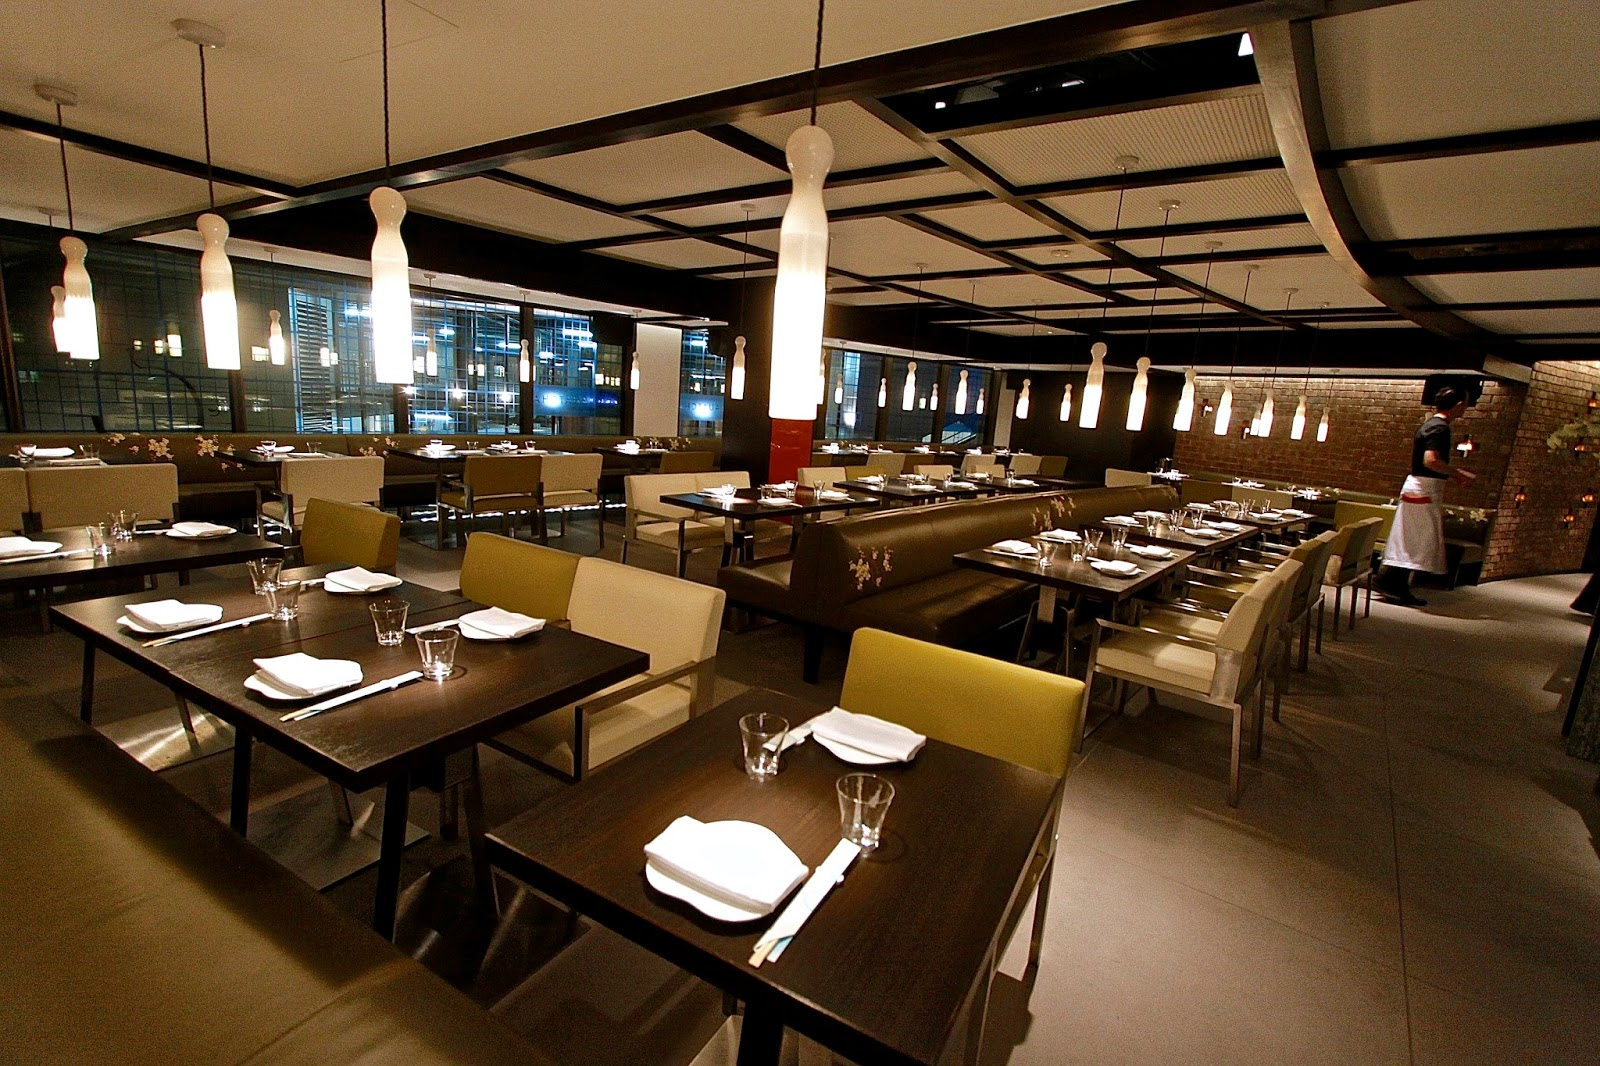 Grey Table And Chairs Ikea Poang Chair Cover The London Foodie: New Yauatcha City -